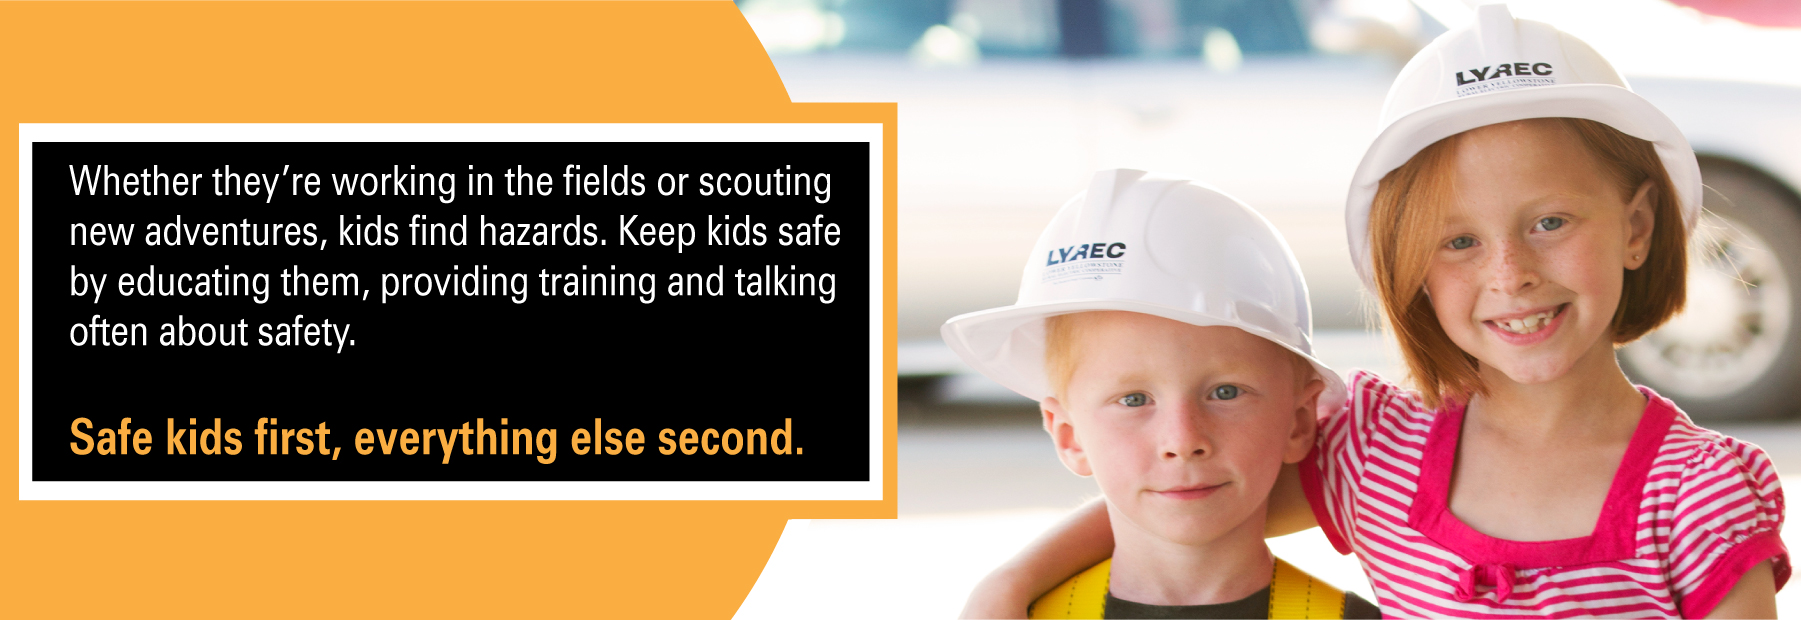 Safety and Kids